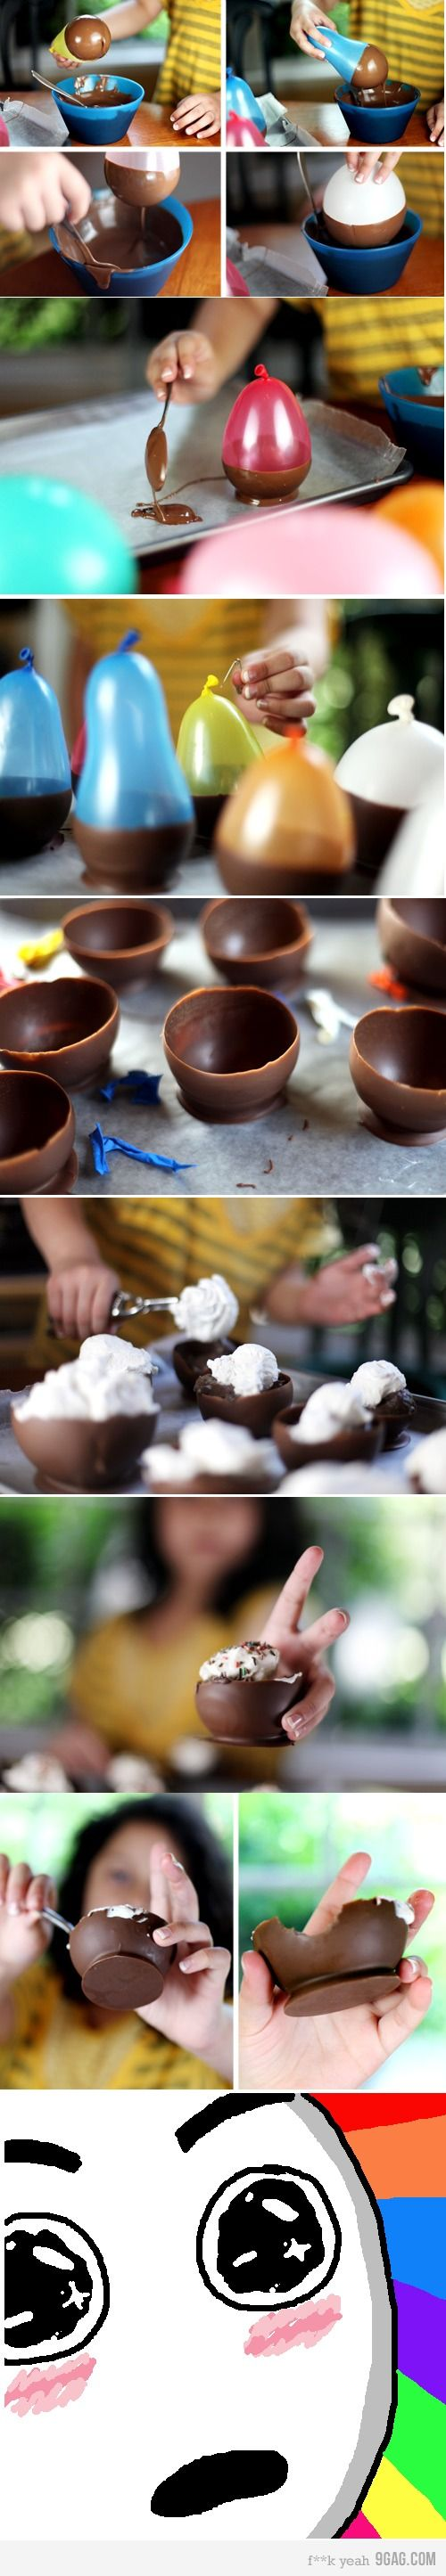 Edible Chocolate Bowls.